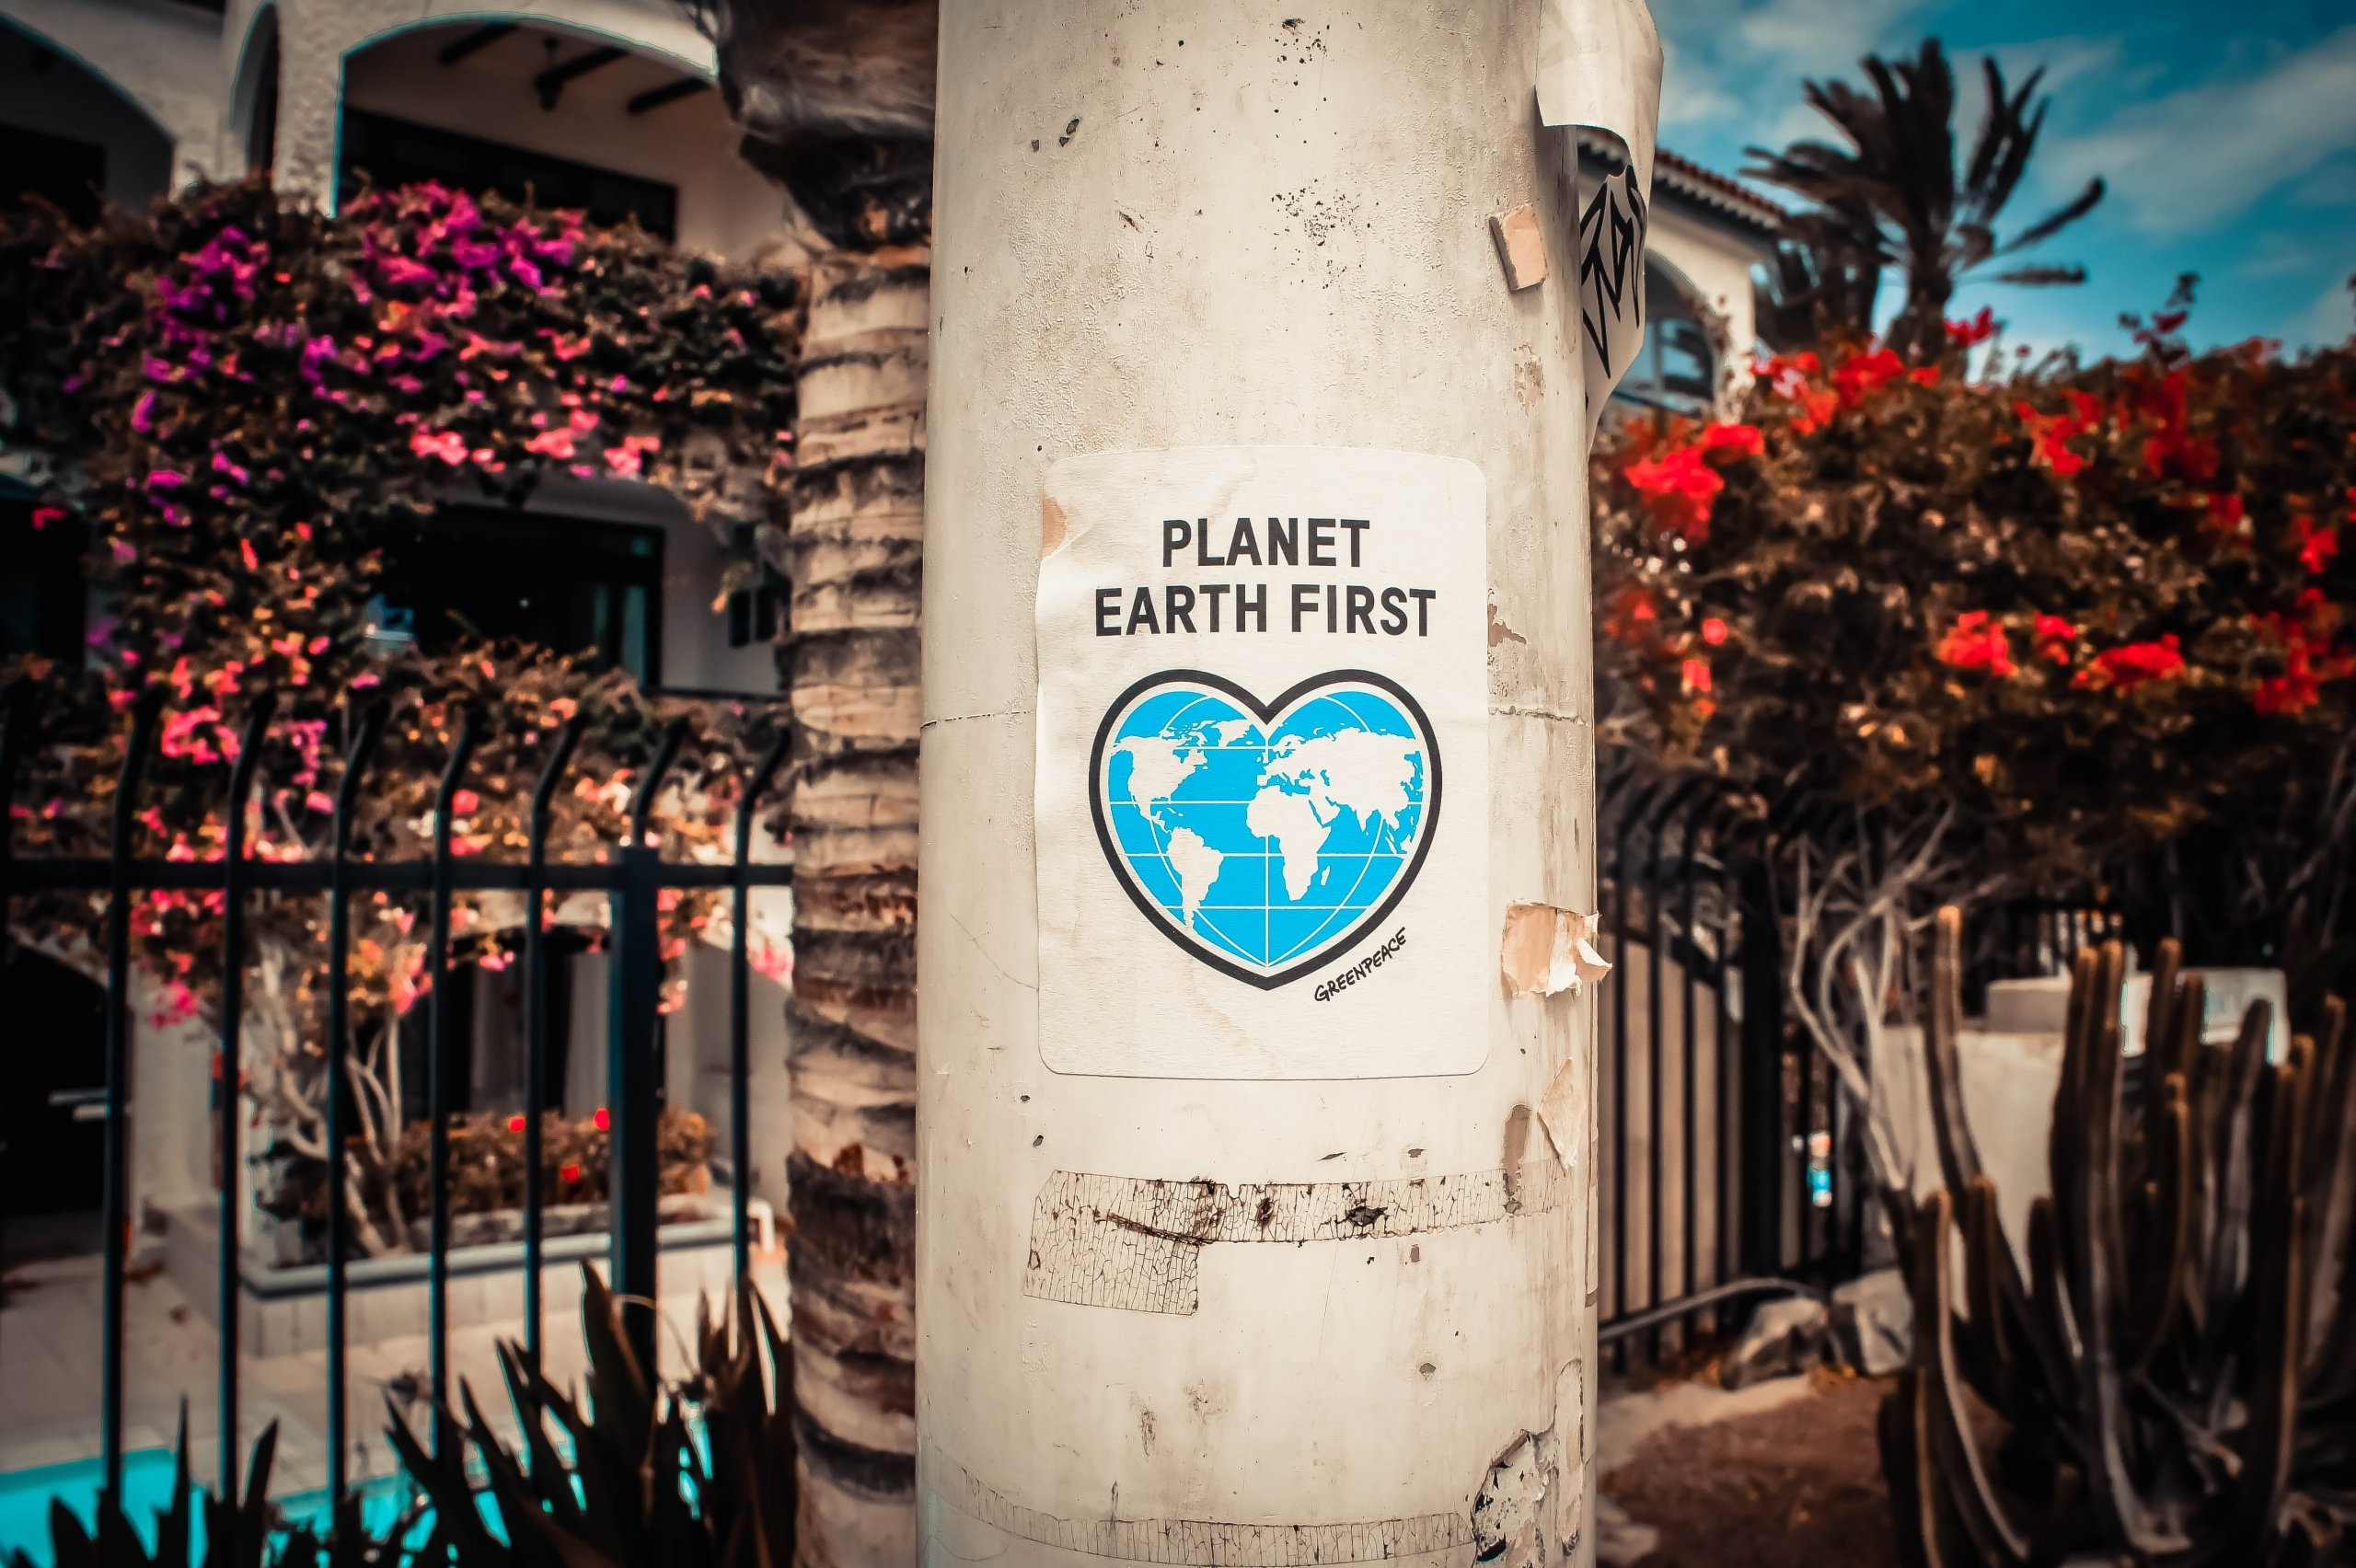 Planet Earth First Poster On A Concrete Post